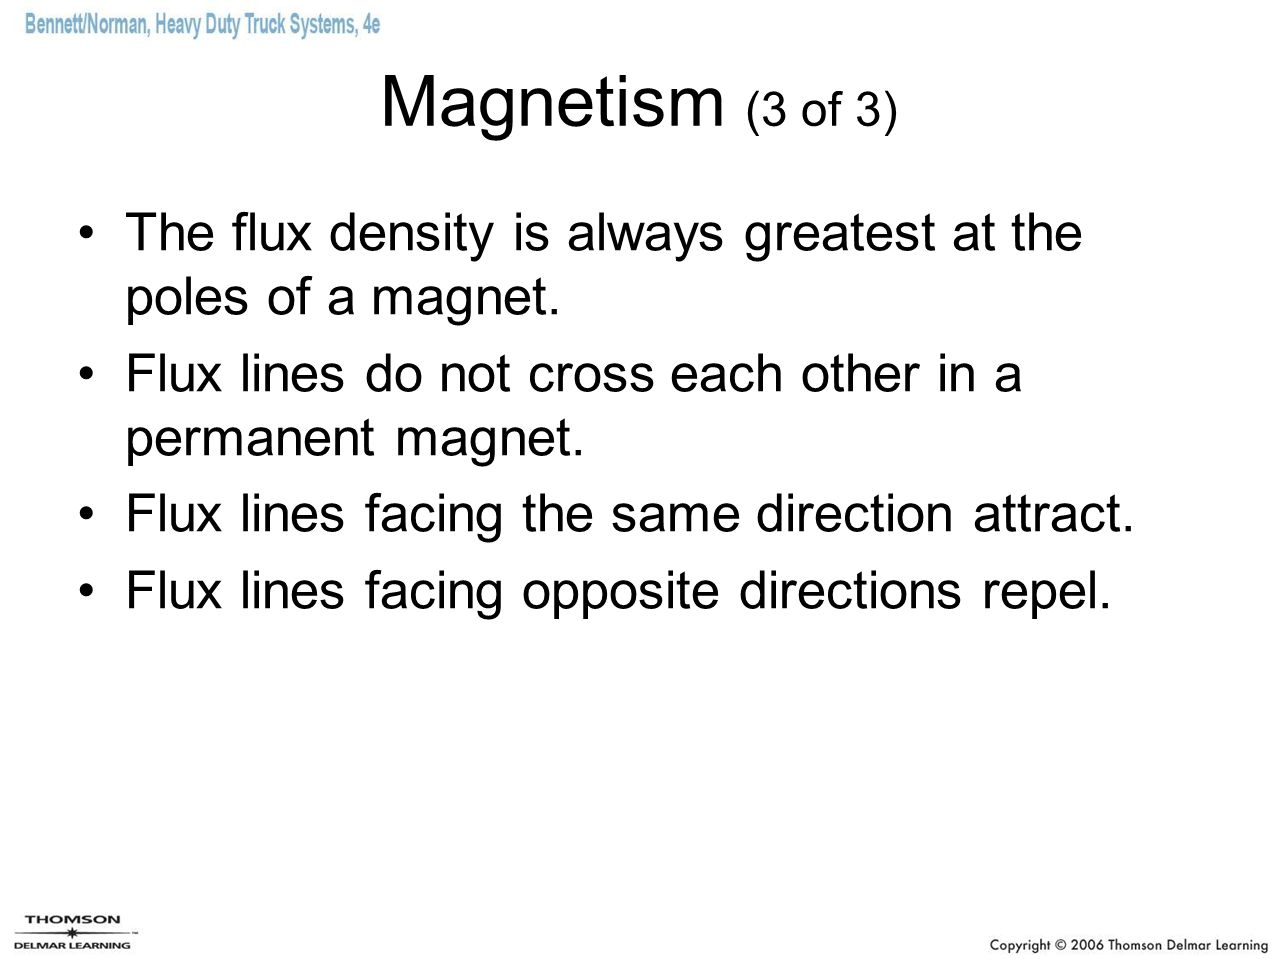 Magnetism (3 of 3) The flux density is always greatest at the poles of a magnet. Flux lines do not cross each other in a permanent magnet.